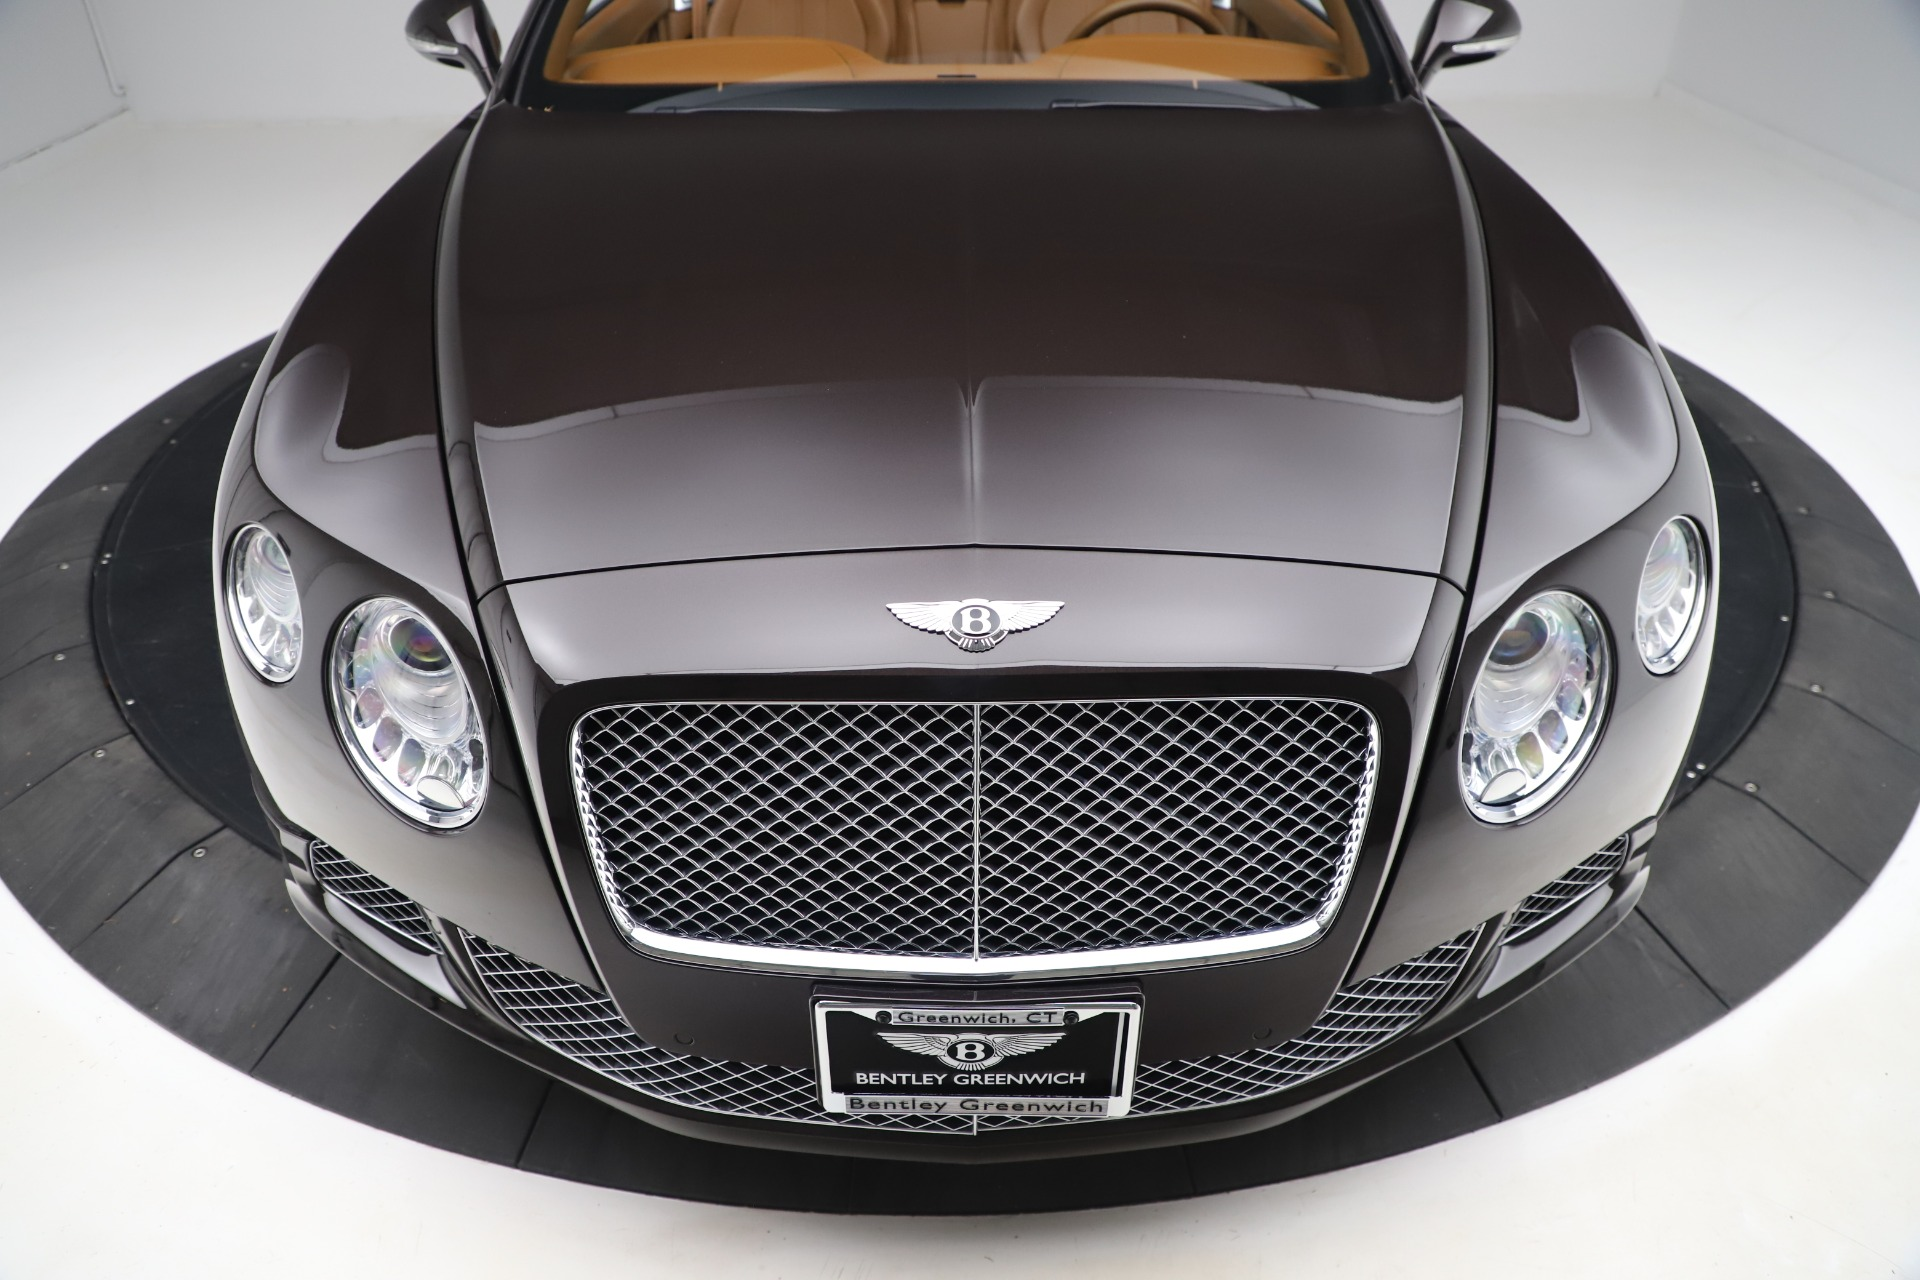 Used 2013 Bentley Continental GT W12 For Sale In Greenwich, CT 3505_p19